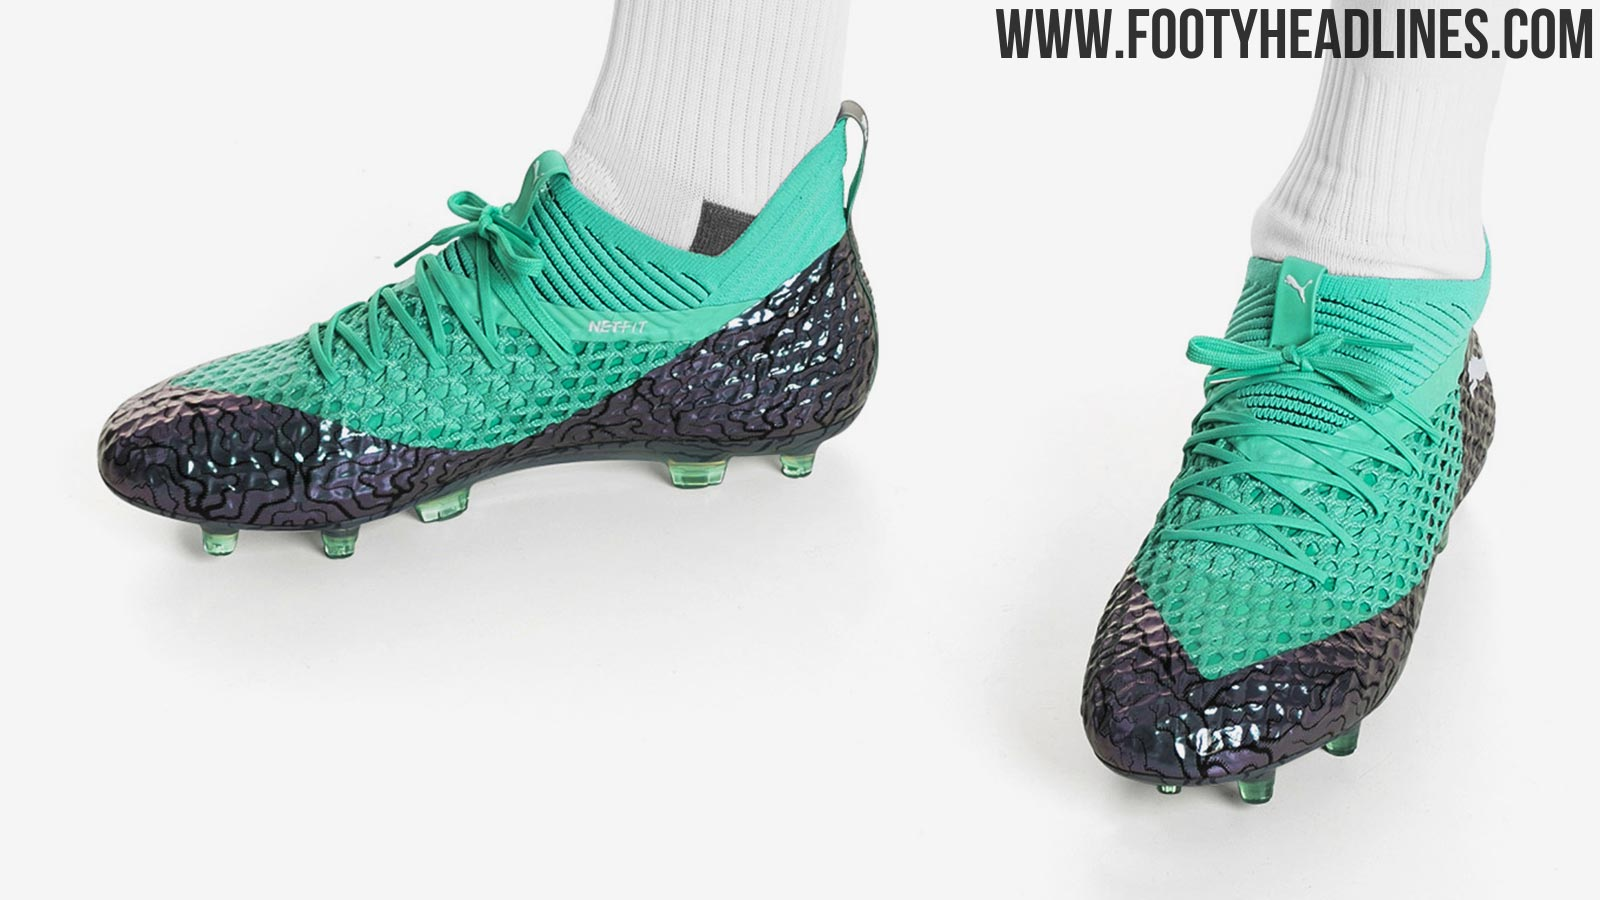 fb1325bf80a Next-Gen Puma Future Netfit 2018 World Cup Boots Revealed